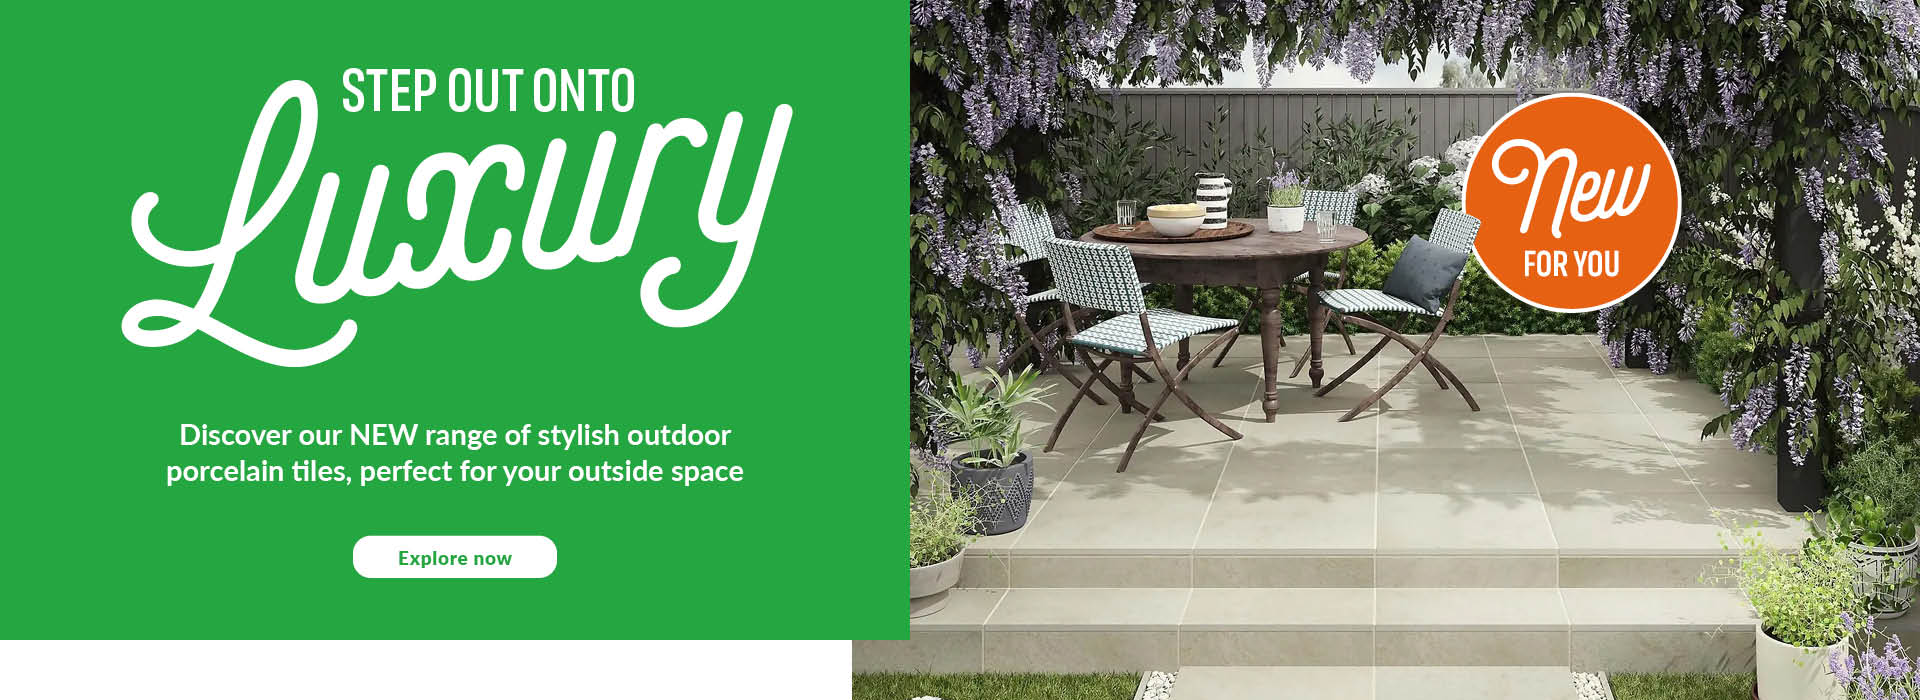 New for you outdoor tiles